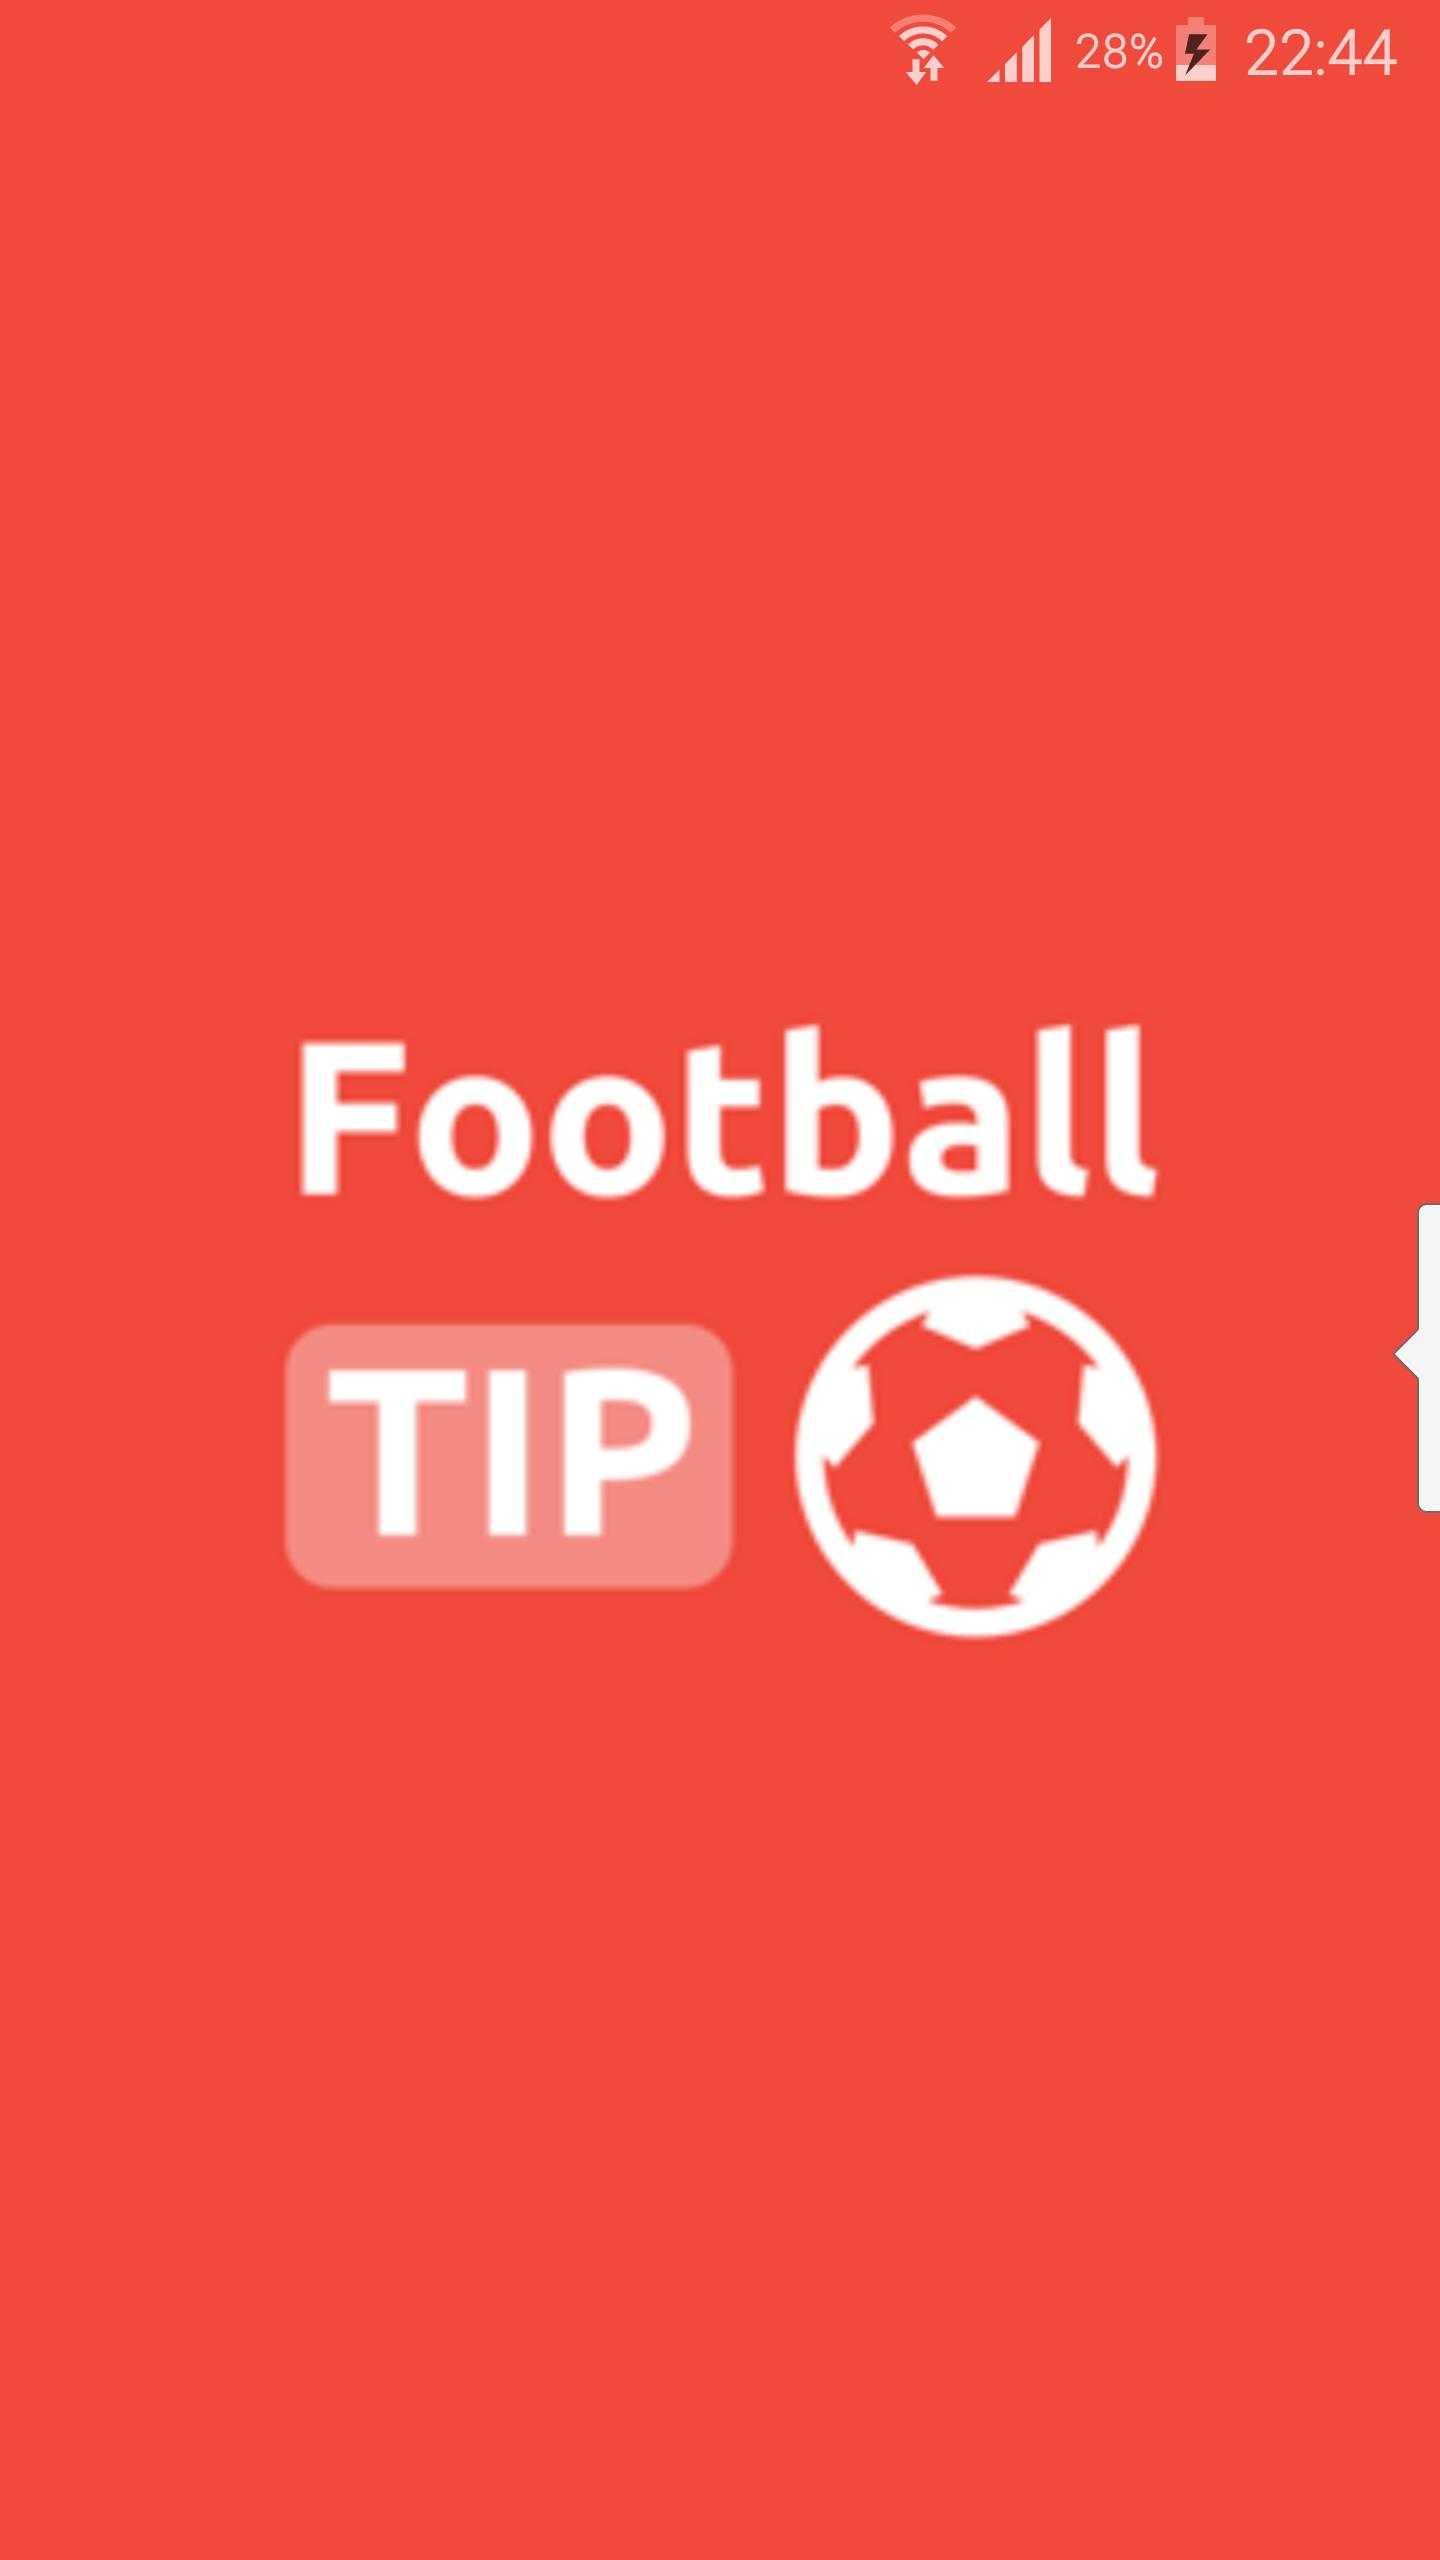 Football betting predictions facebook inc fa cup predictions today/betting